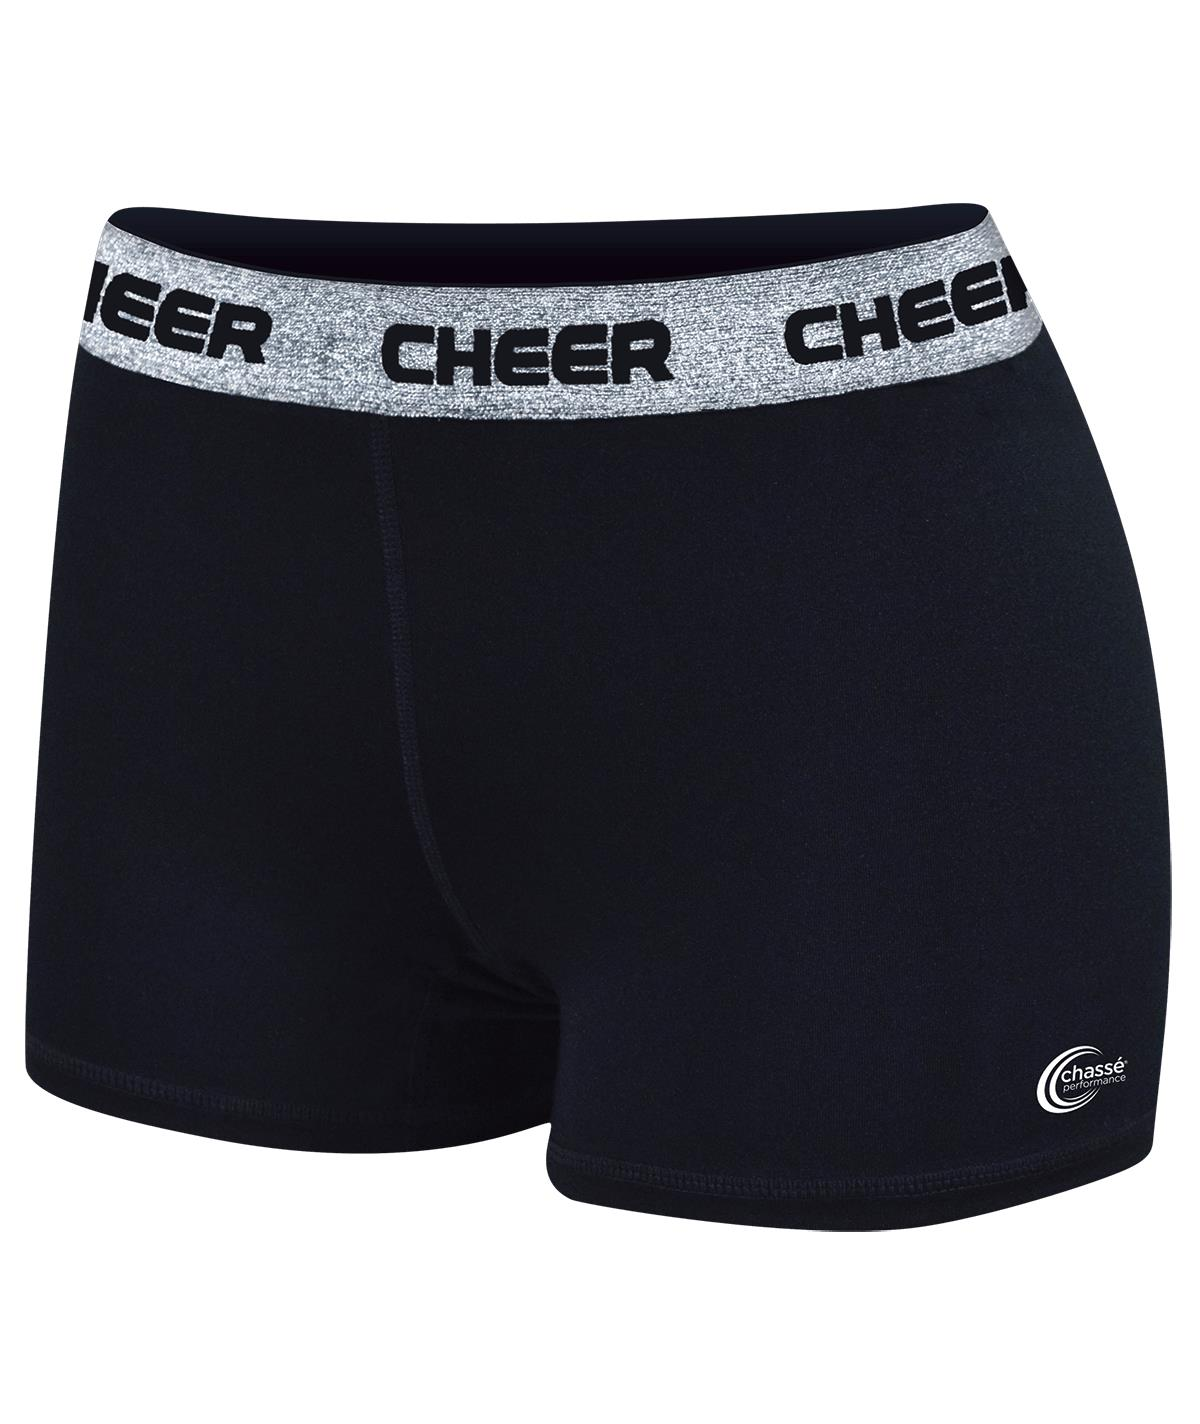 Chassé C-Prime Performance Short